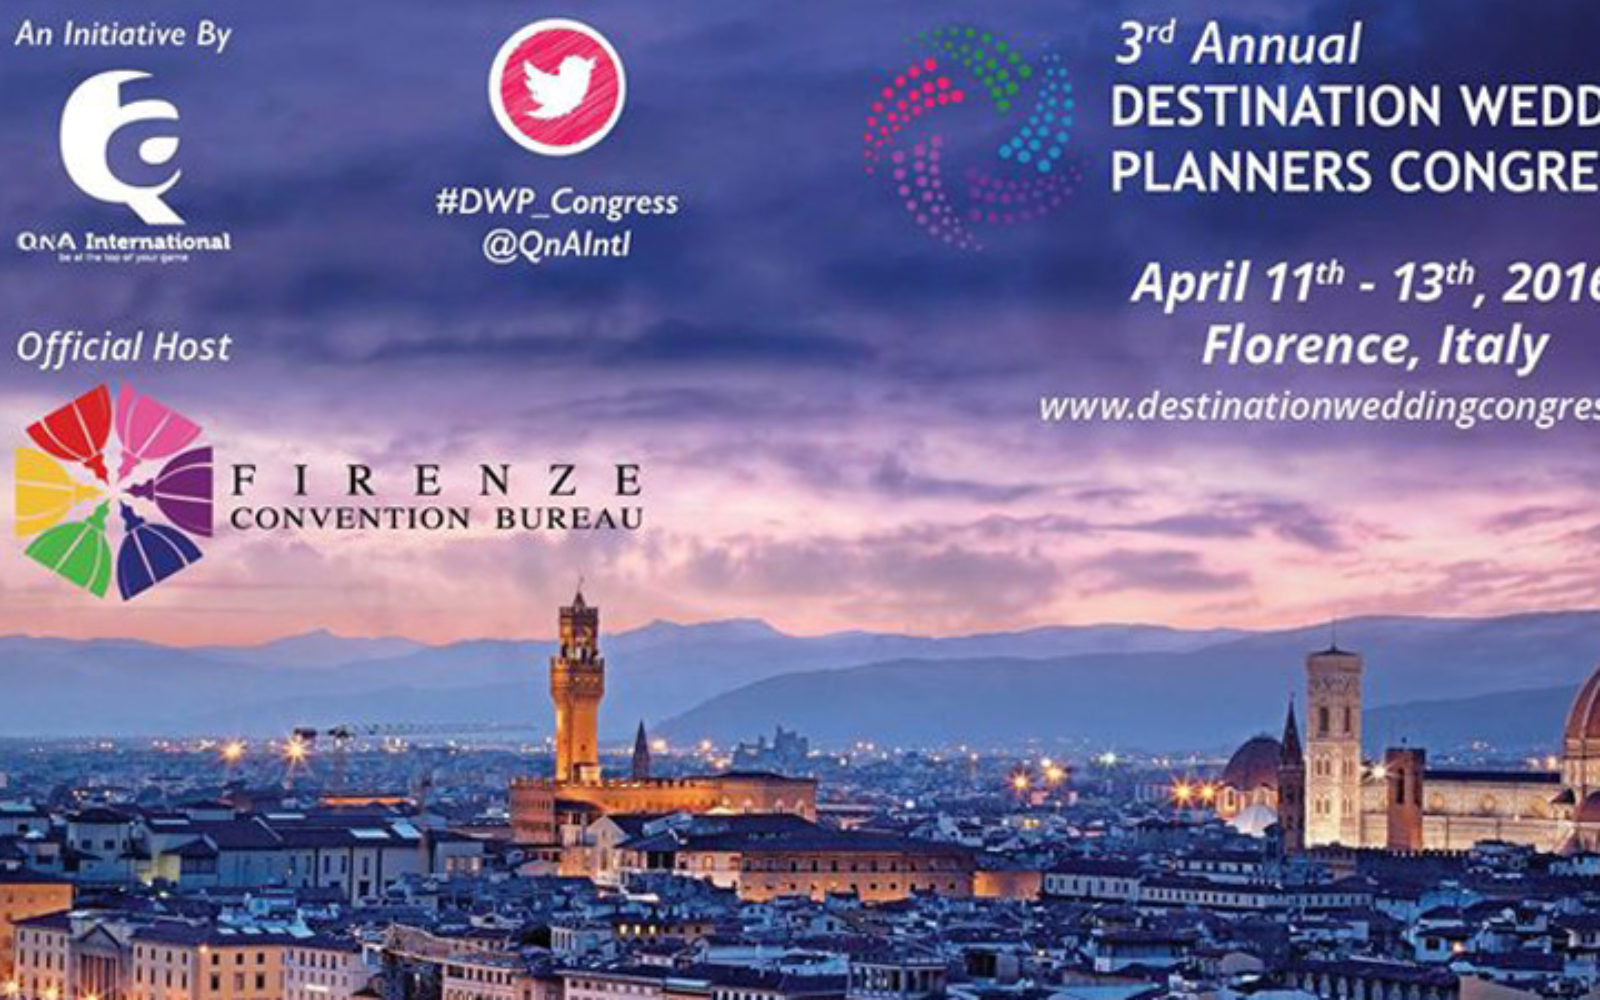 Florence wins Wedding Planners Congress in 2016 - CMW